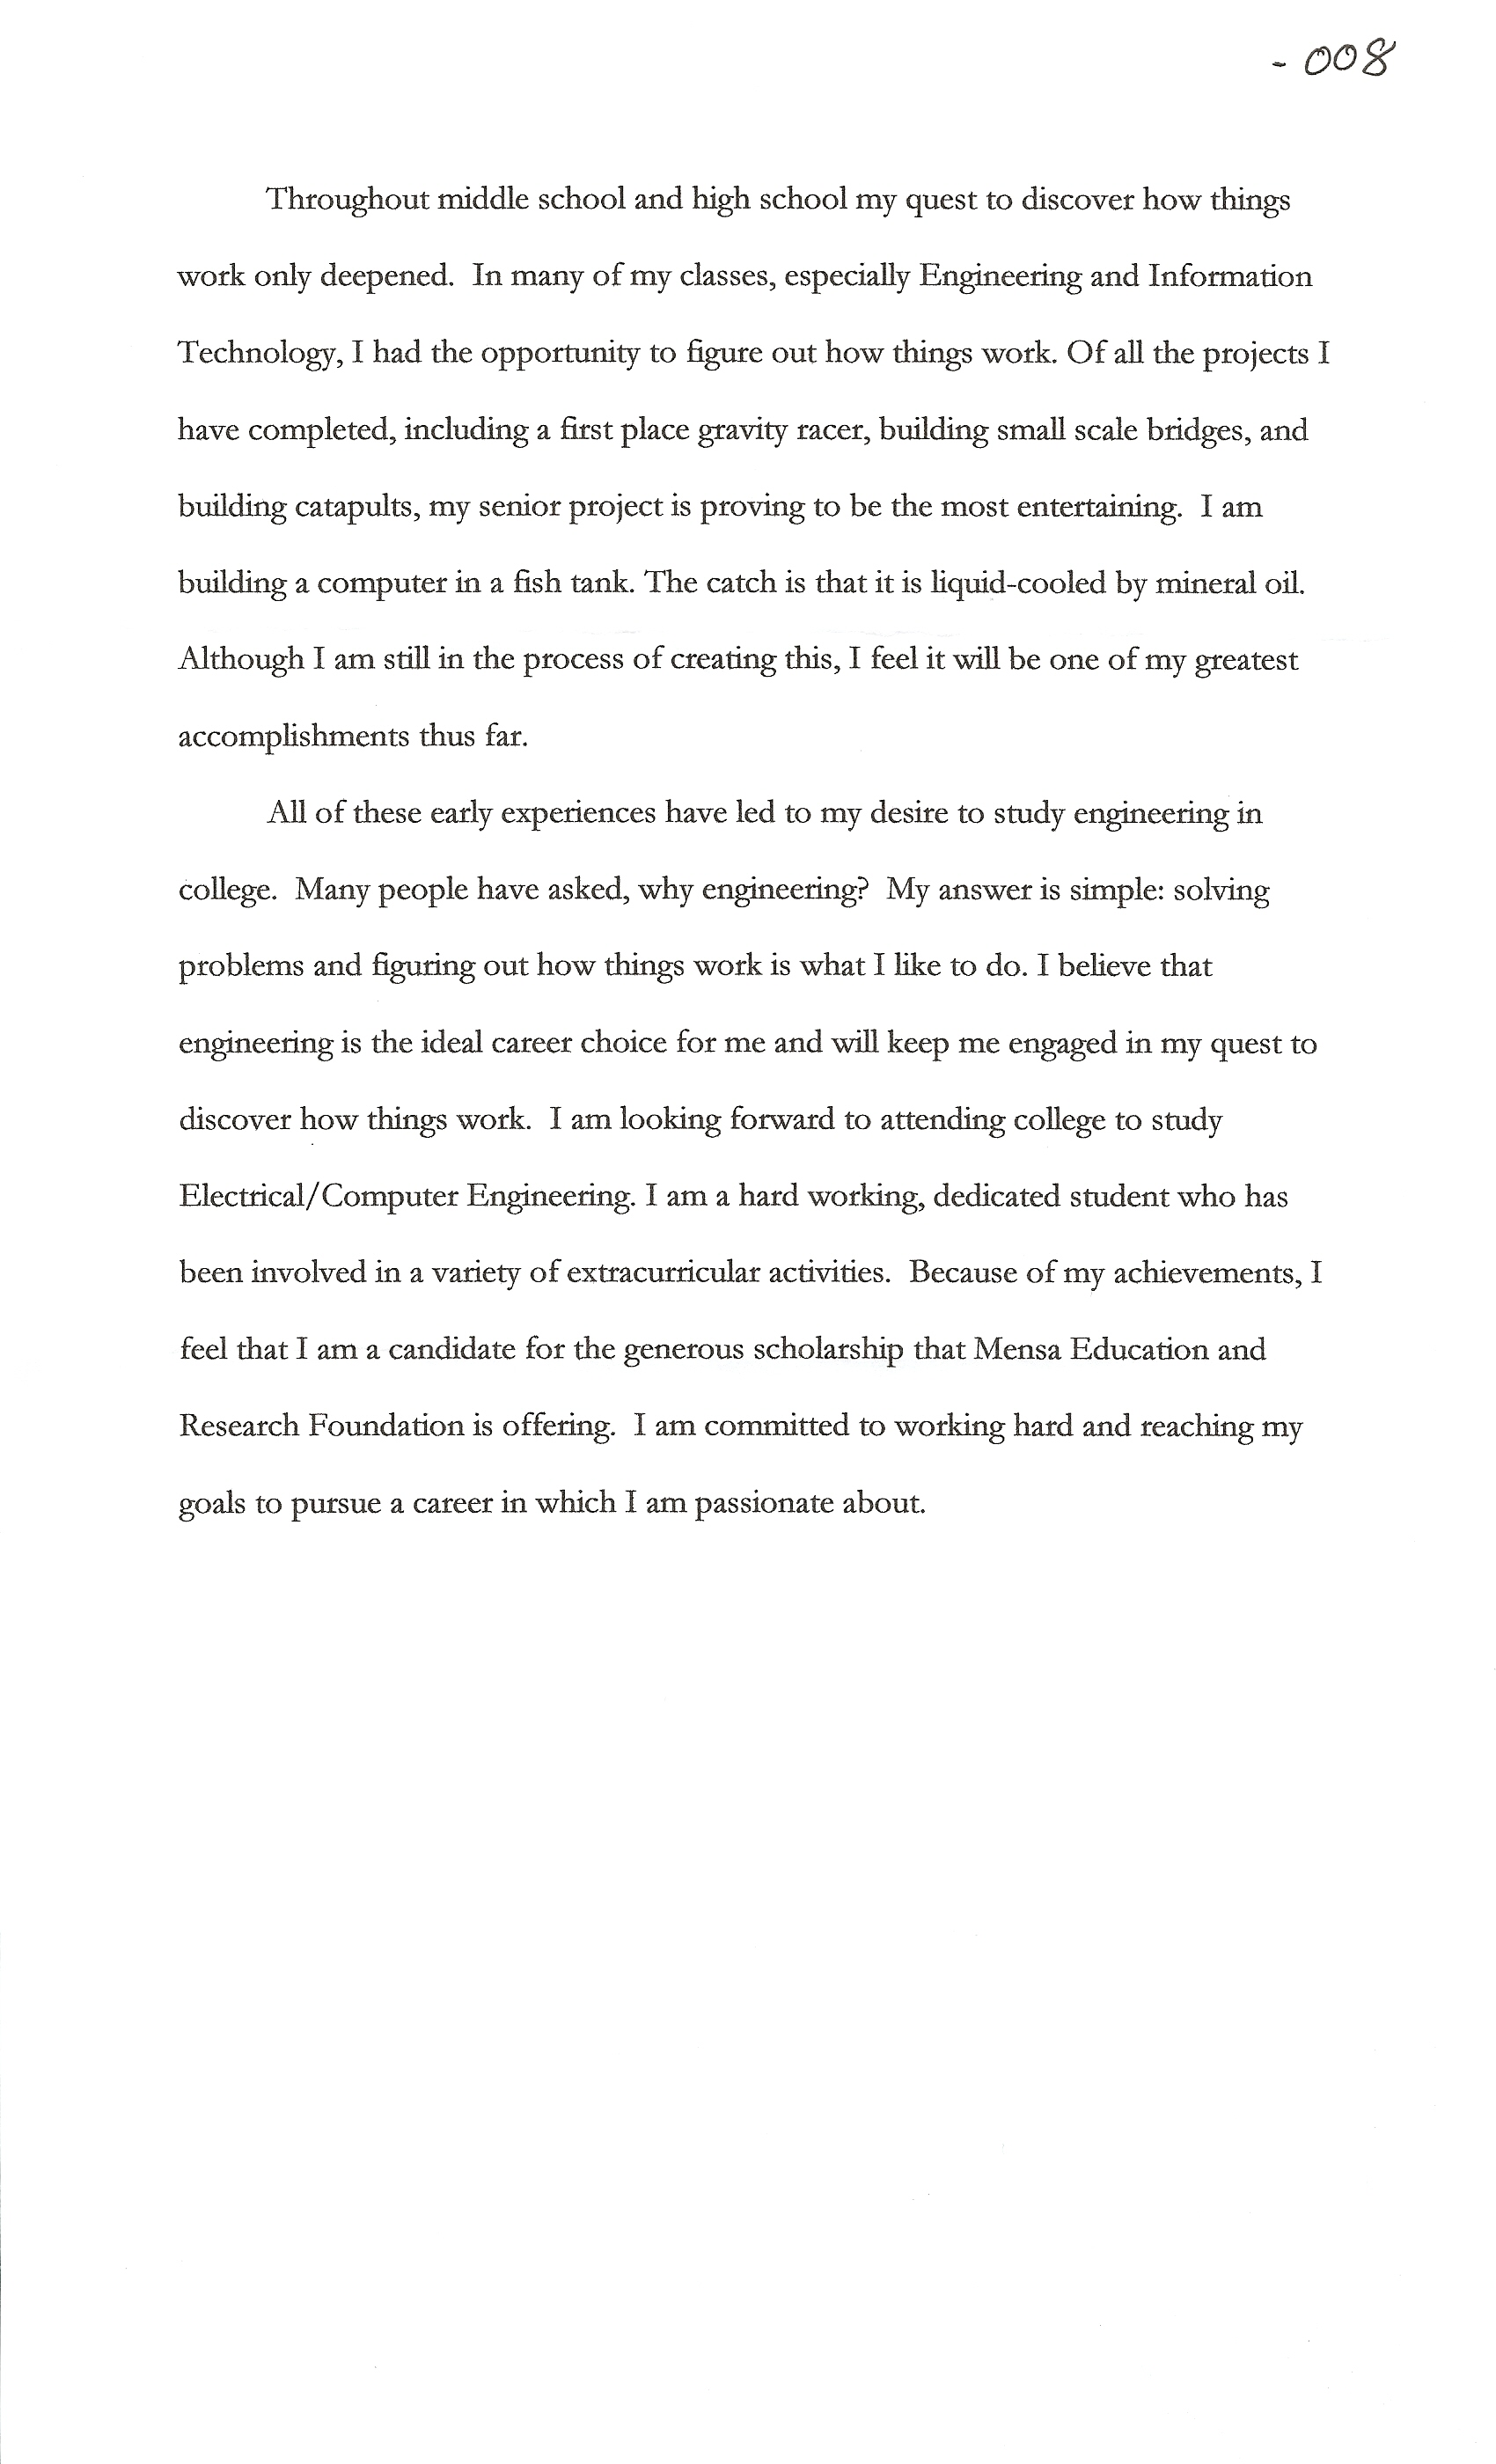 004 Joshua Cate Essay Example Educational Goals Shocking Examples And Career Pdf Full